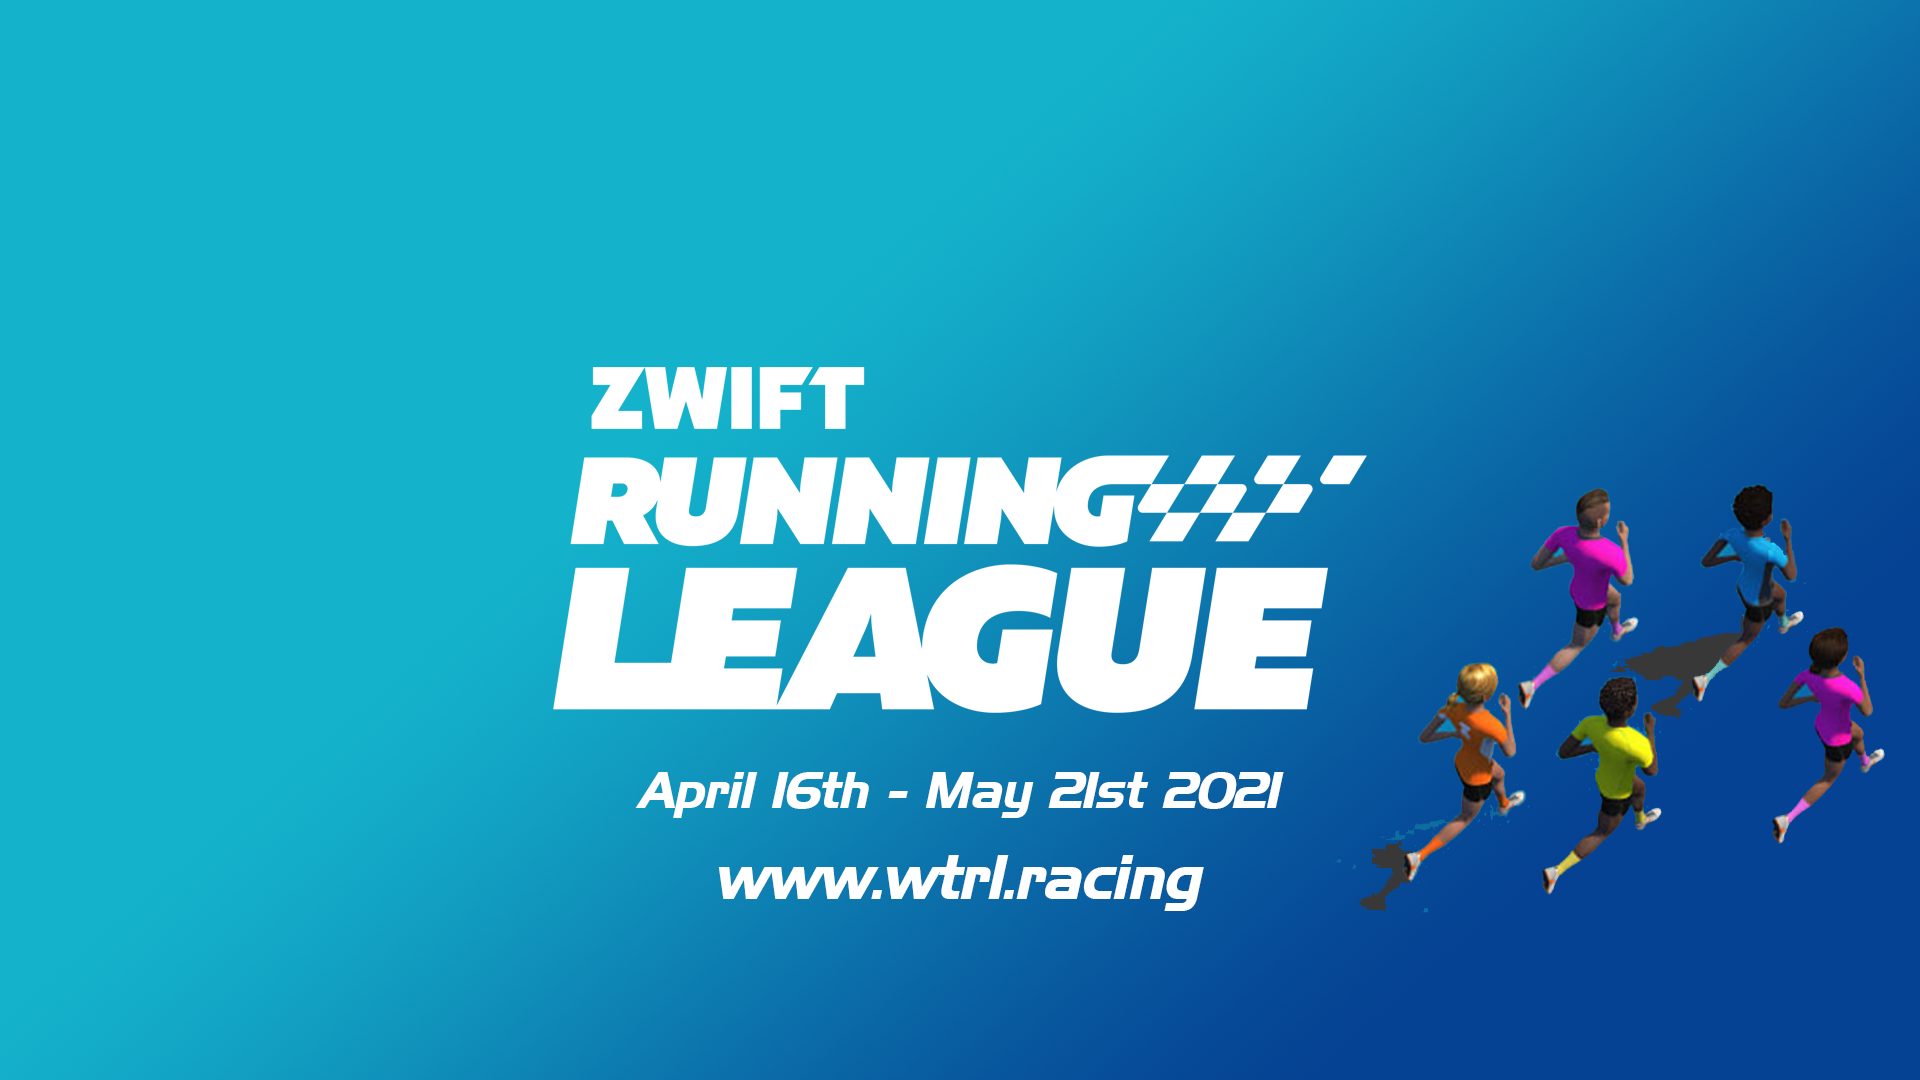 Zwift Running League